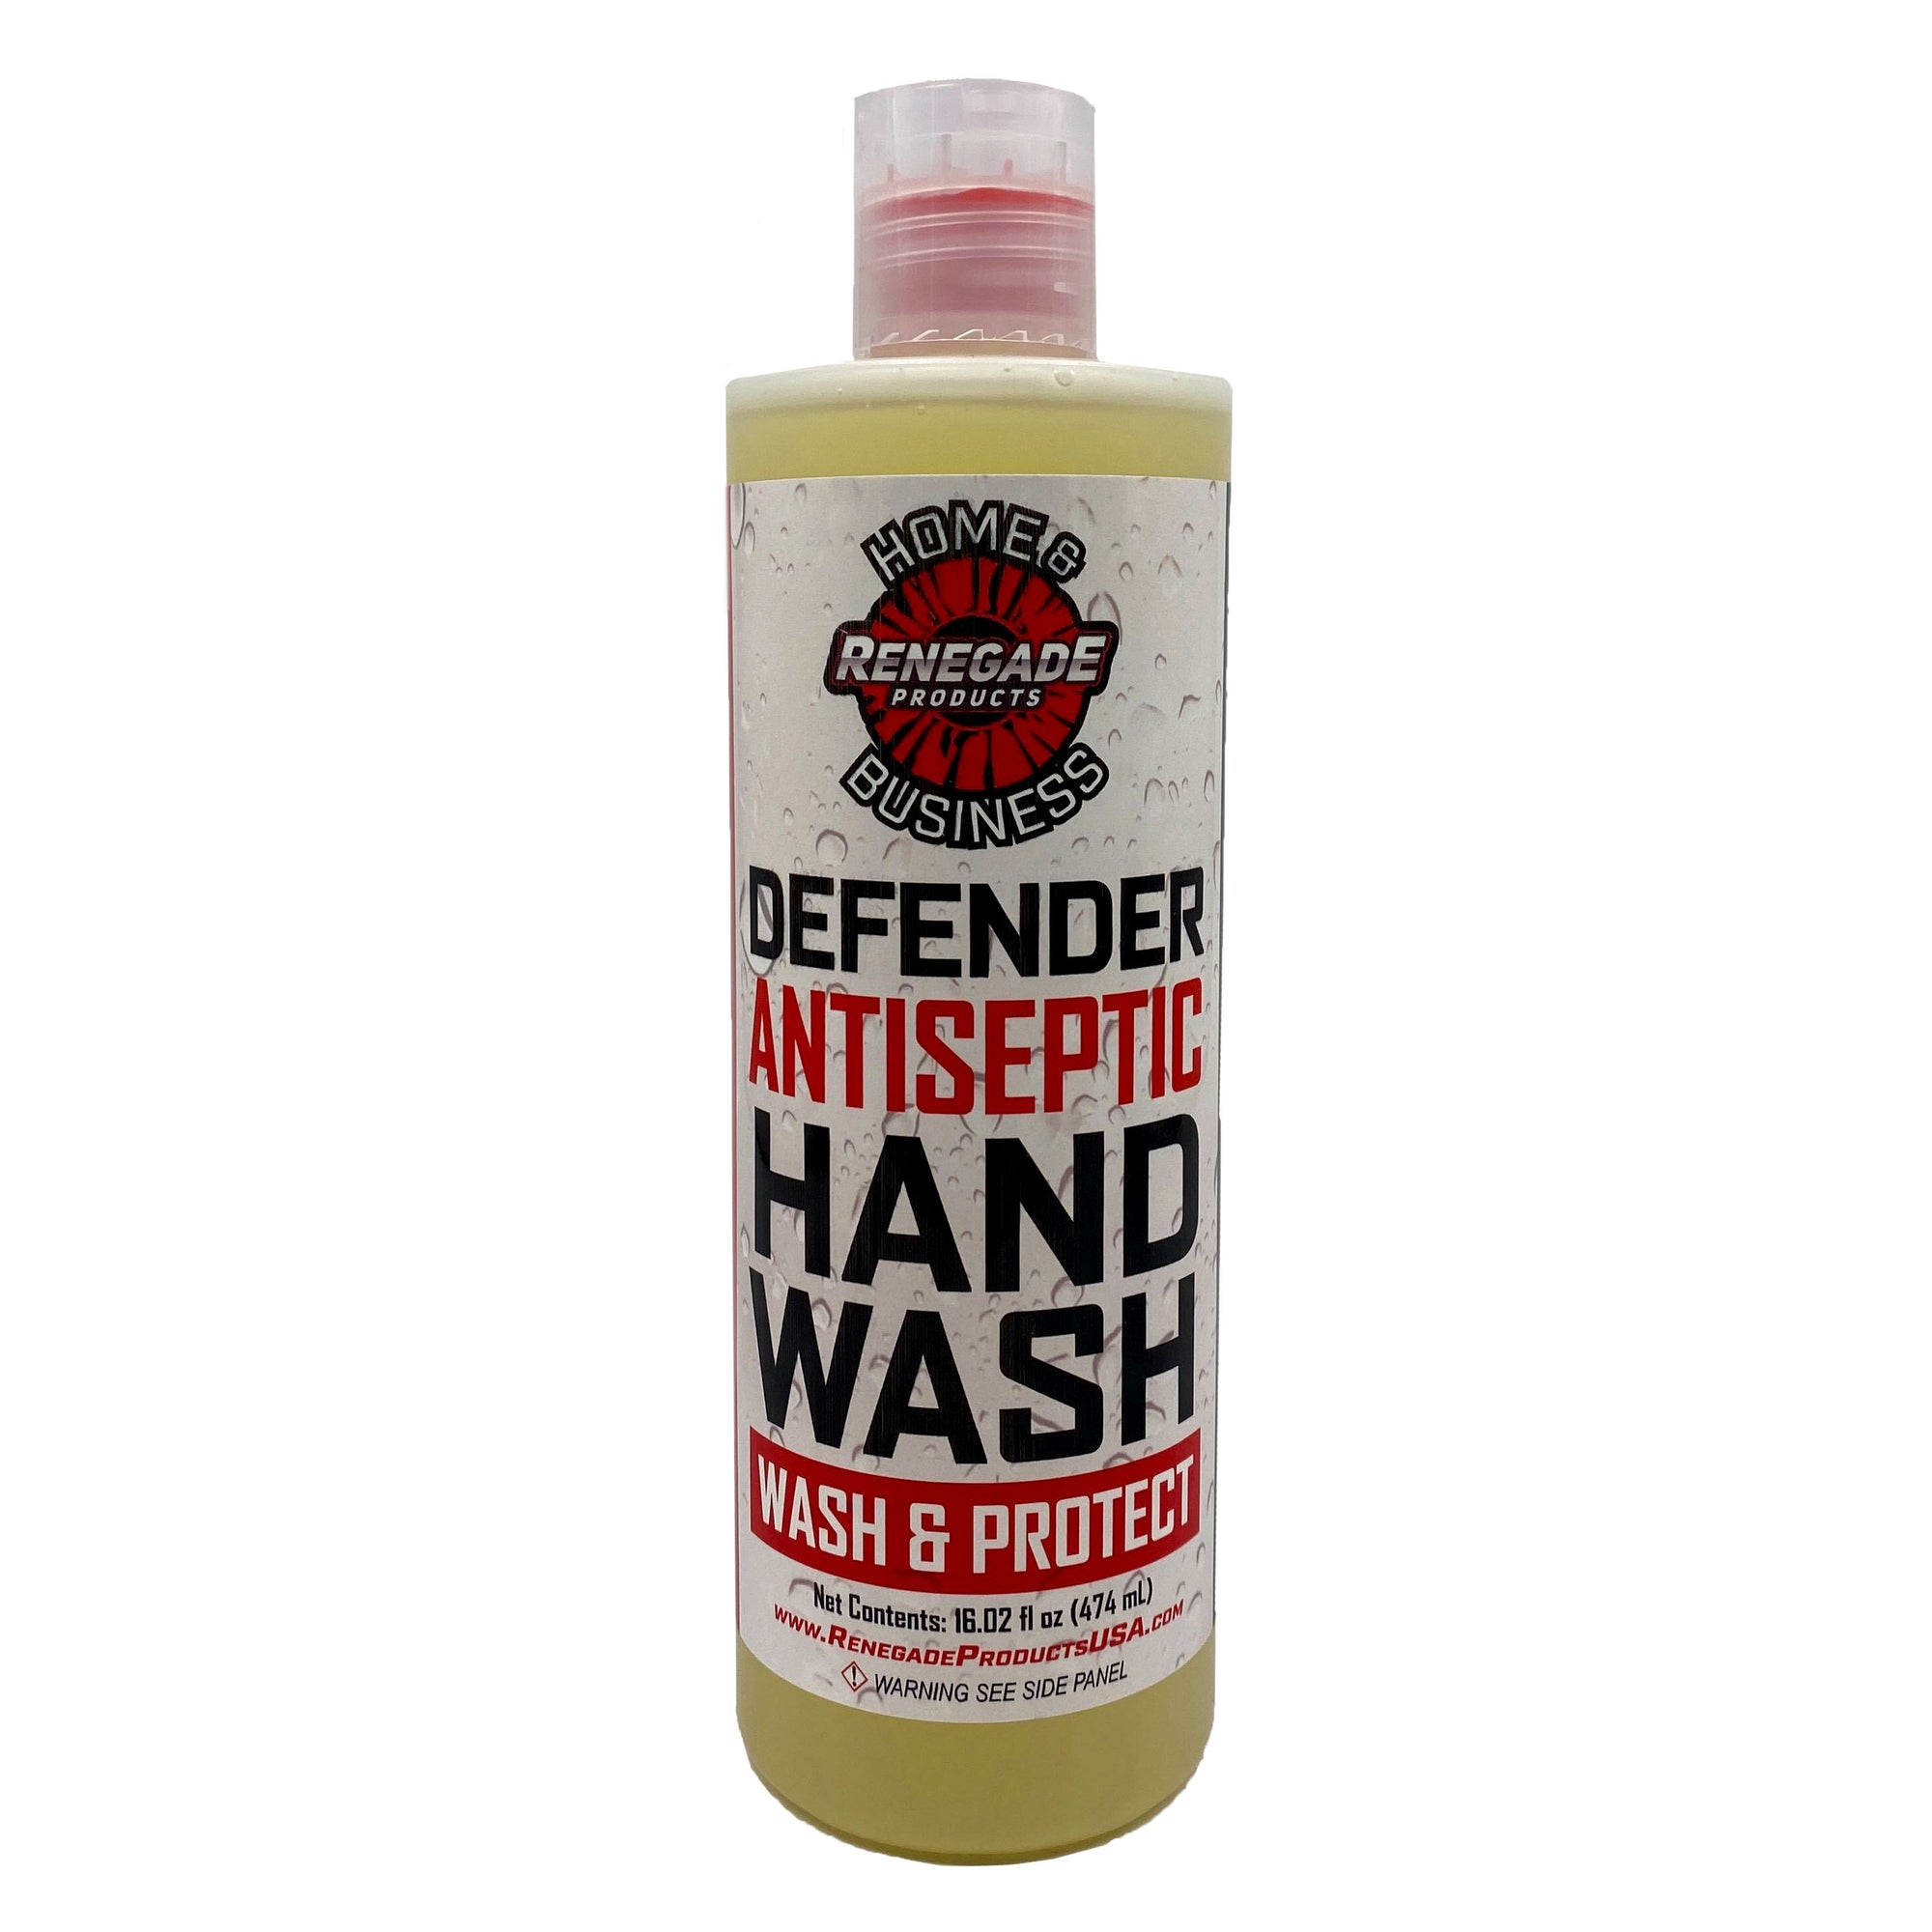 Defender Antiseptic Hand Washing Soap